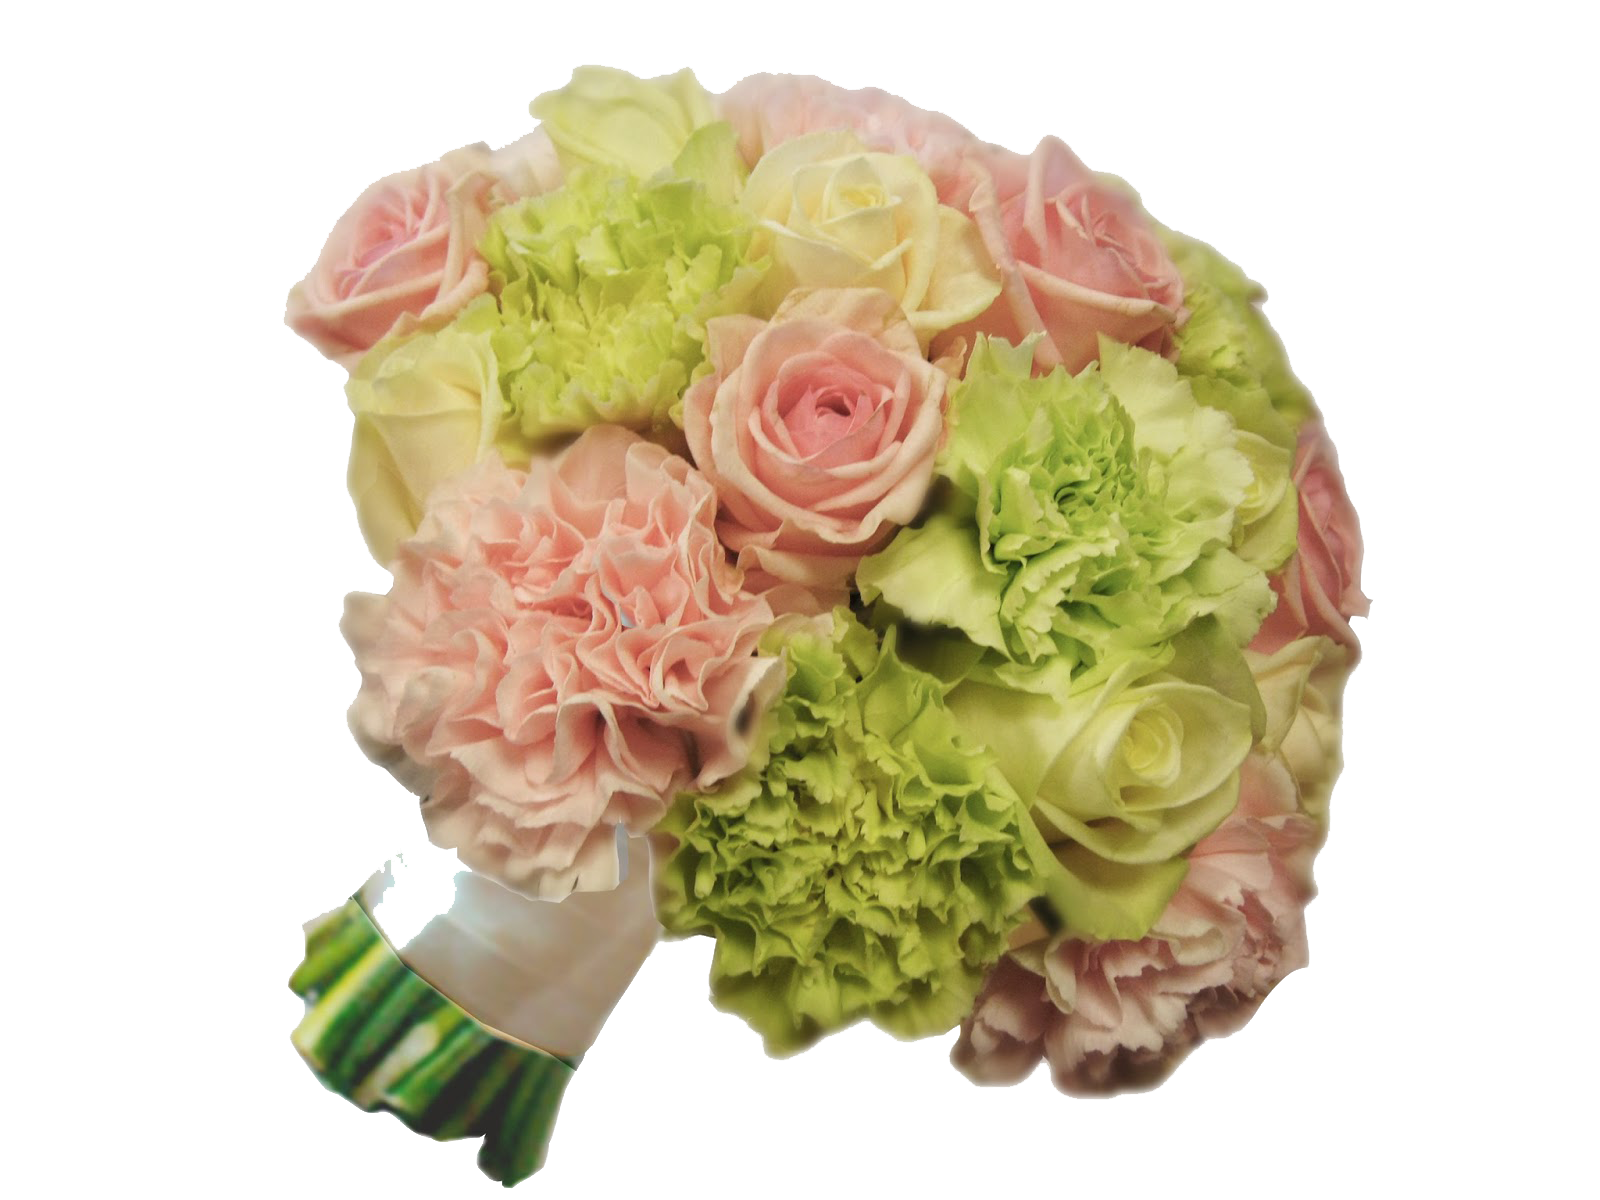 Wedding Flower Transparent Image PNG Image